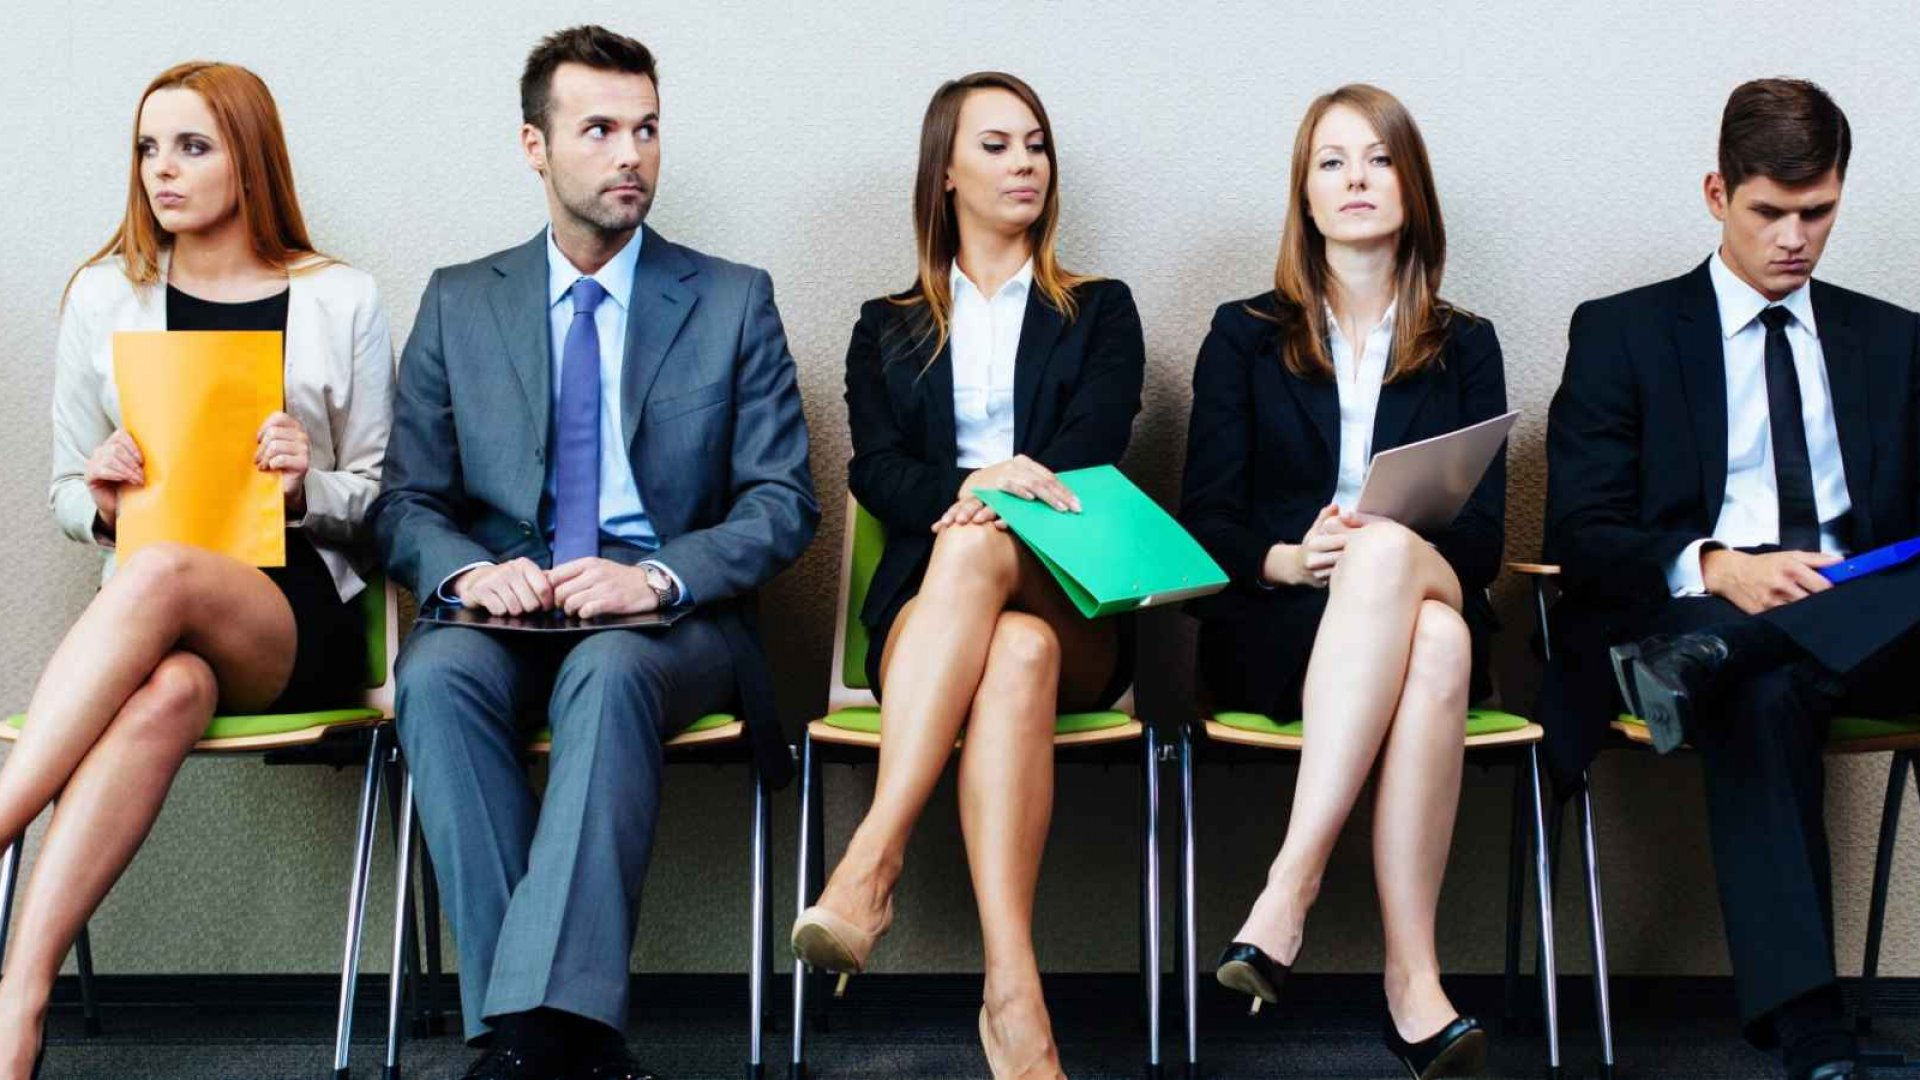 Want to Land the Job of Your Dreams? Make Sure You Do This